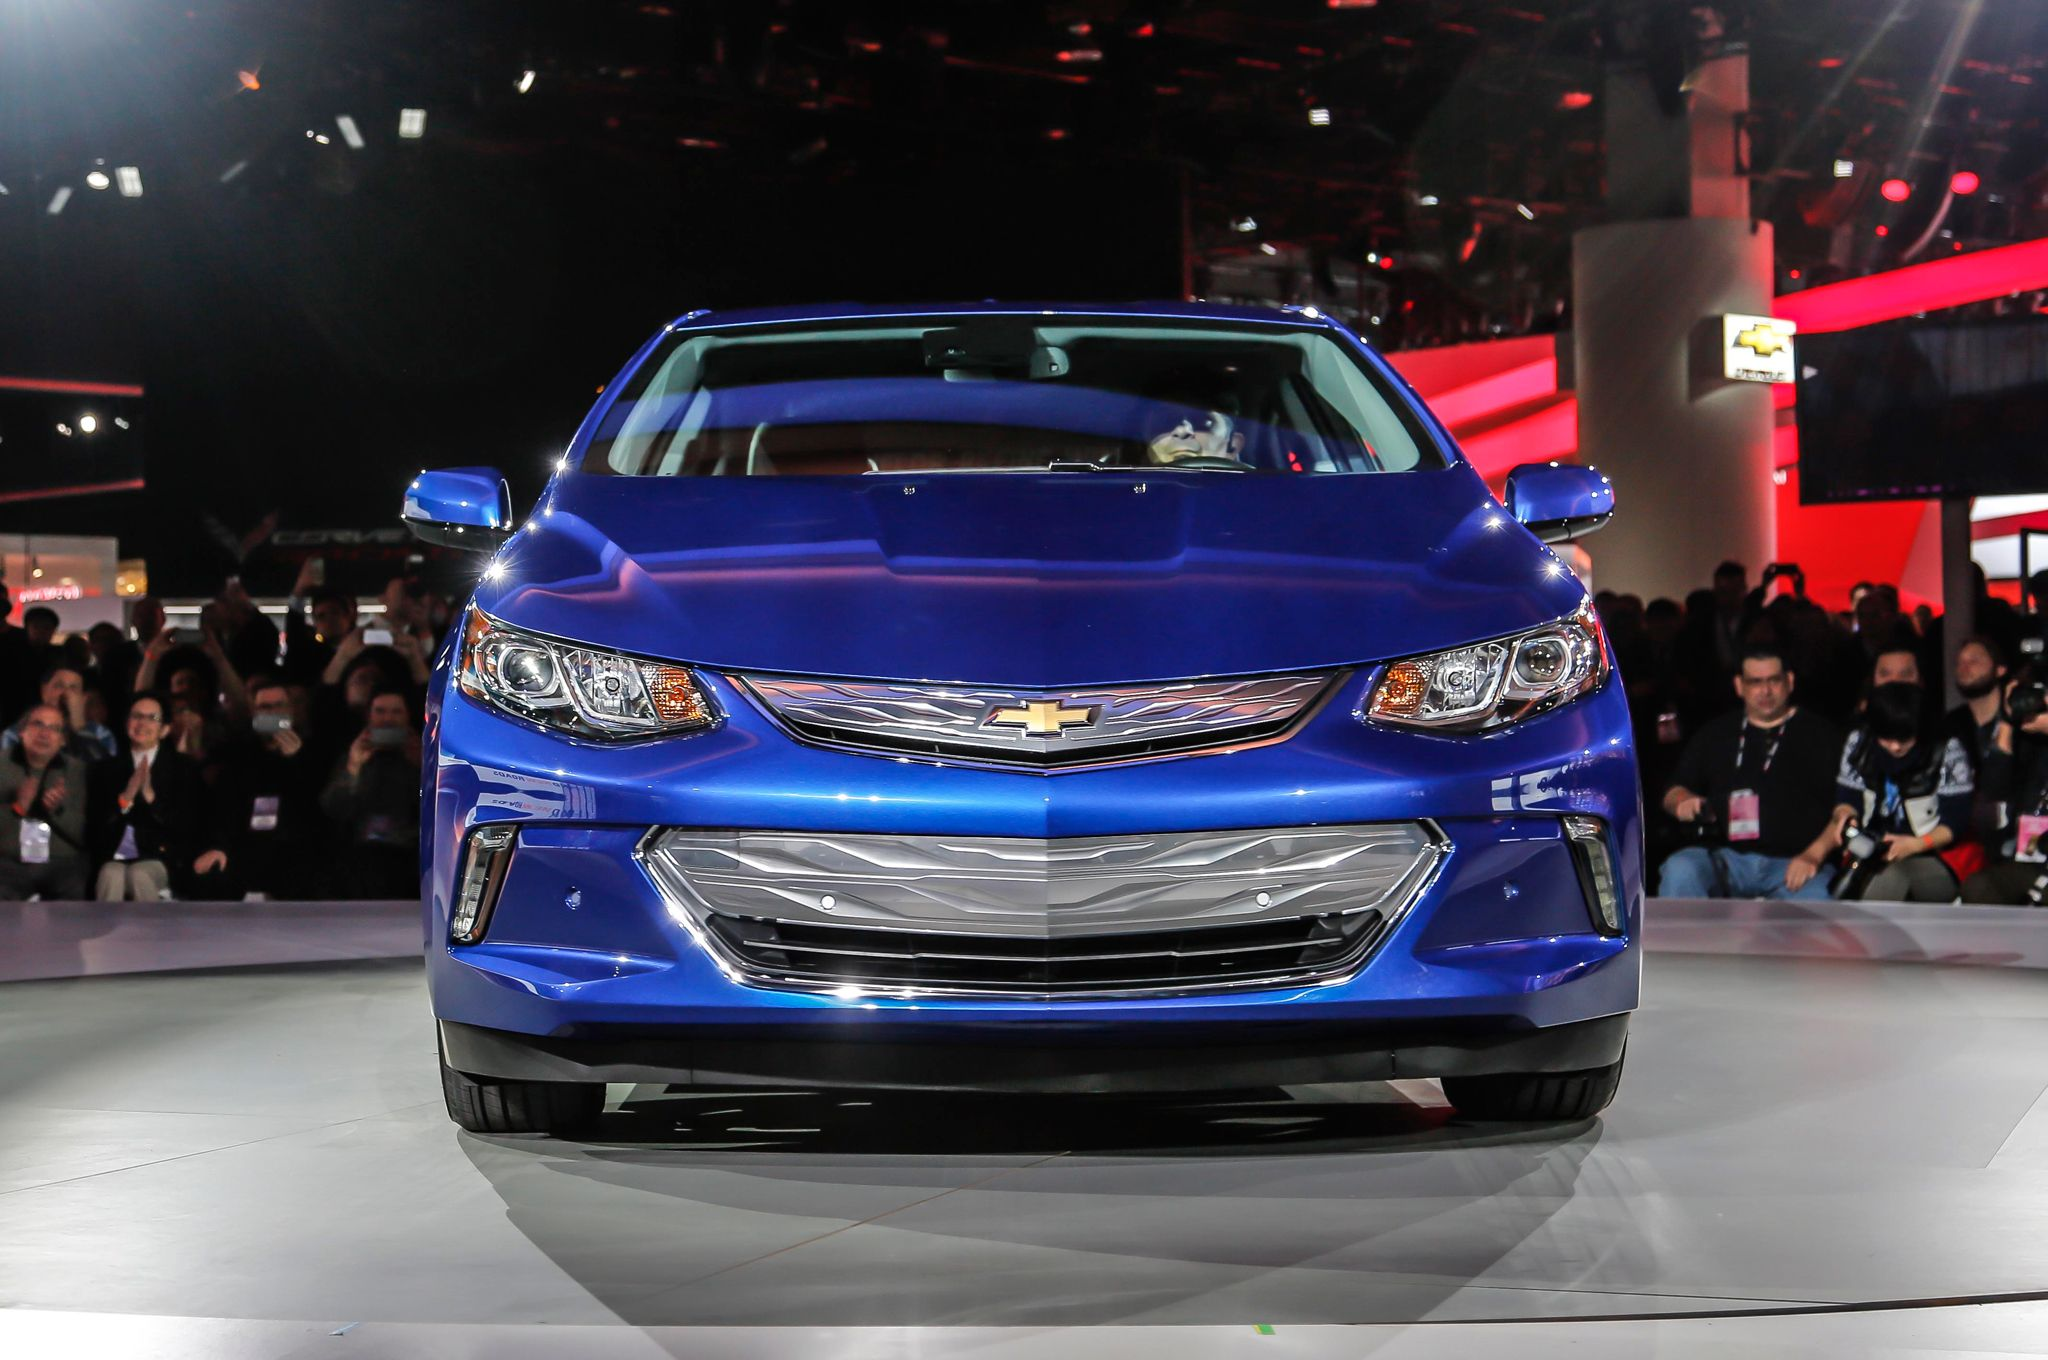 2018 Chevrolet Volt Price And Release Date - http://www.uscarsnews ...